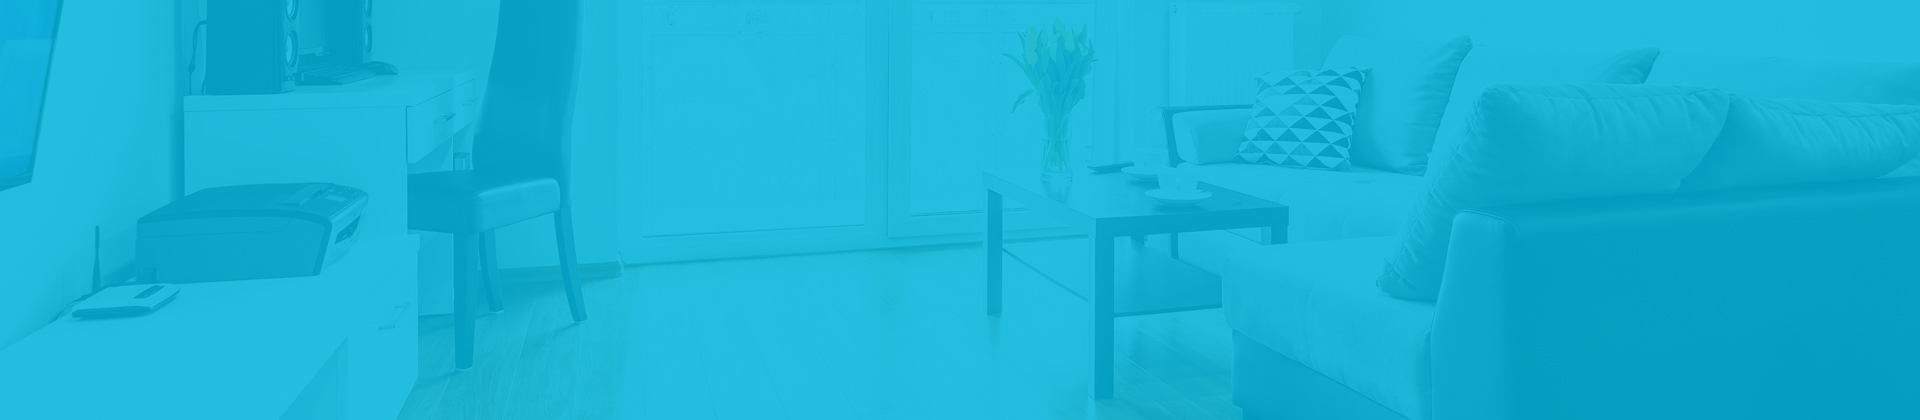 A photo of a home in the living room with a teal blue overlay